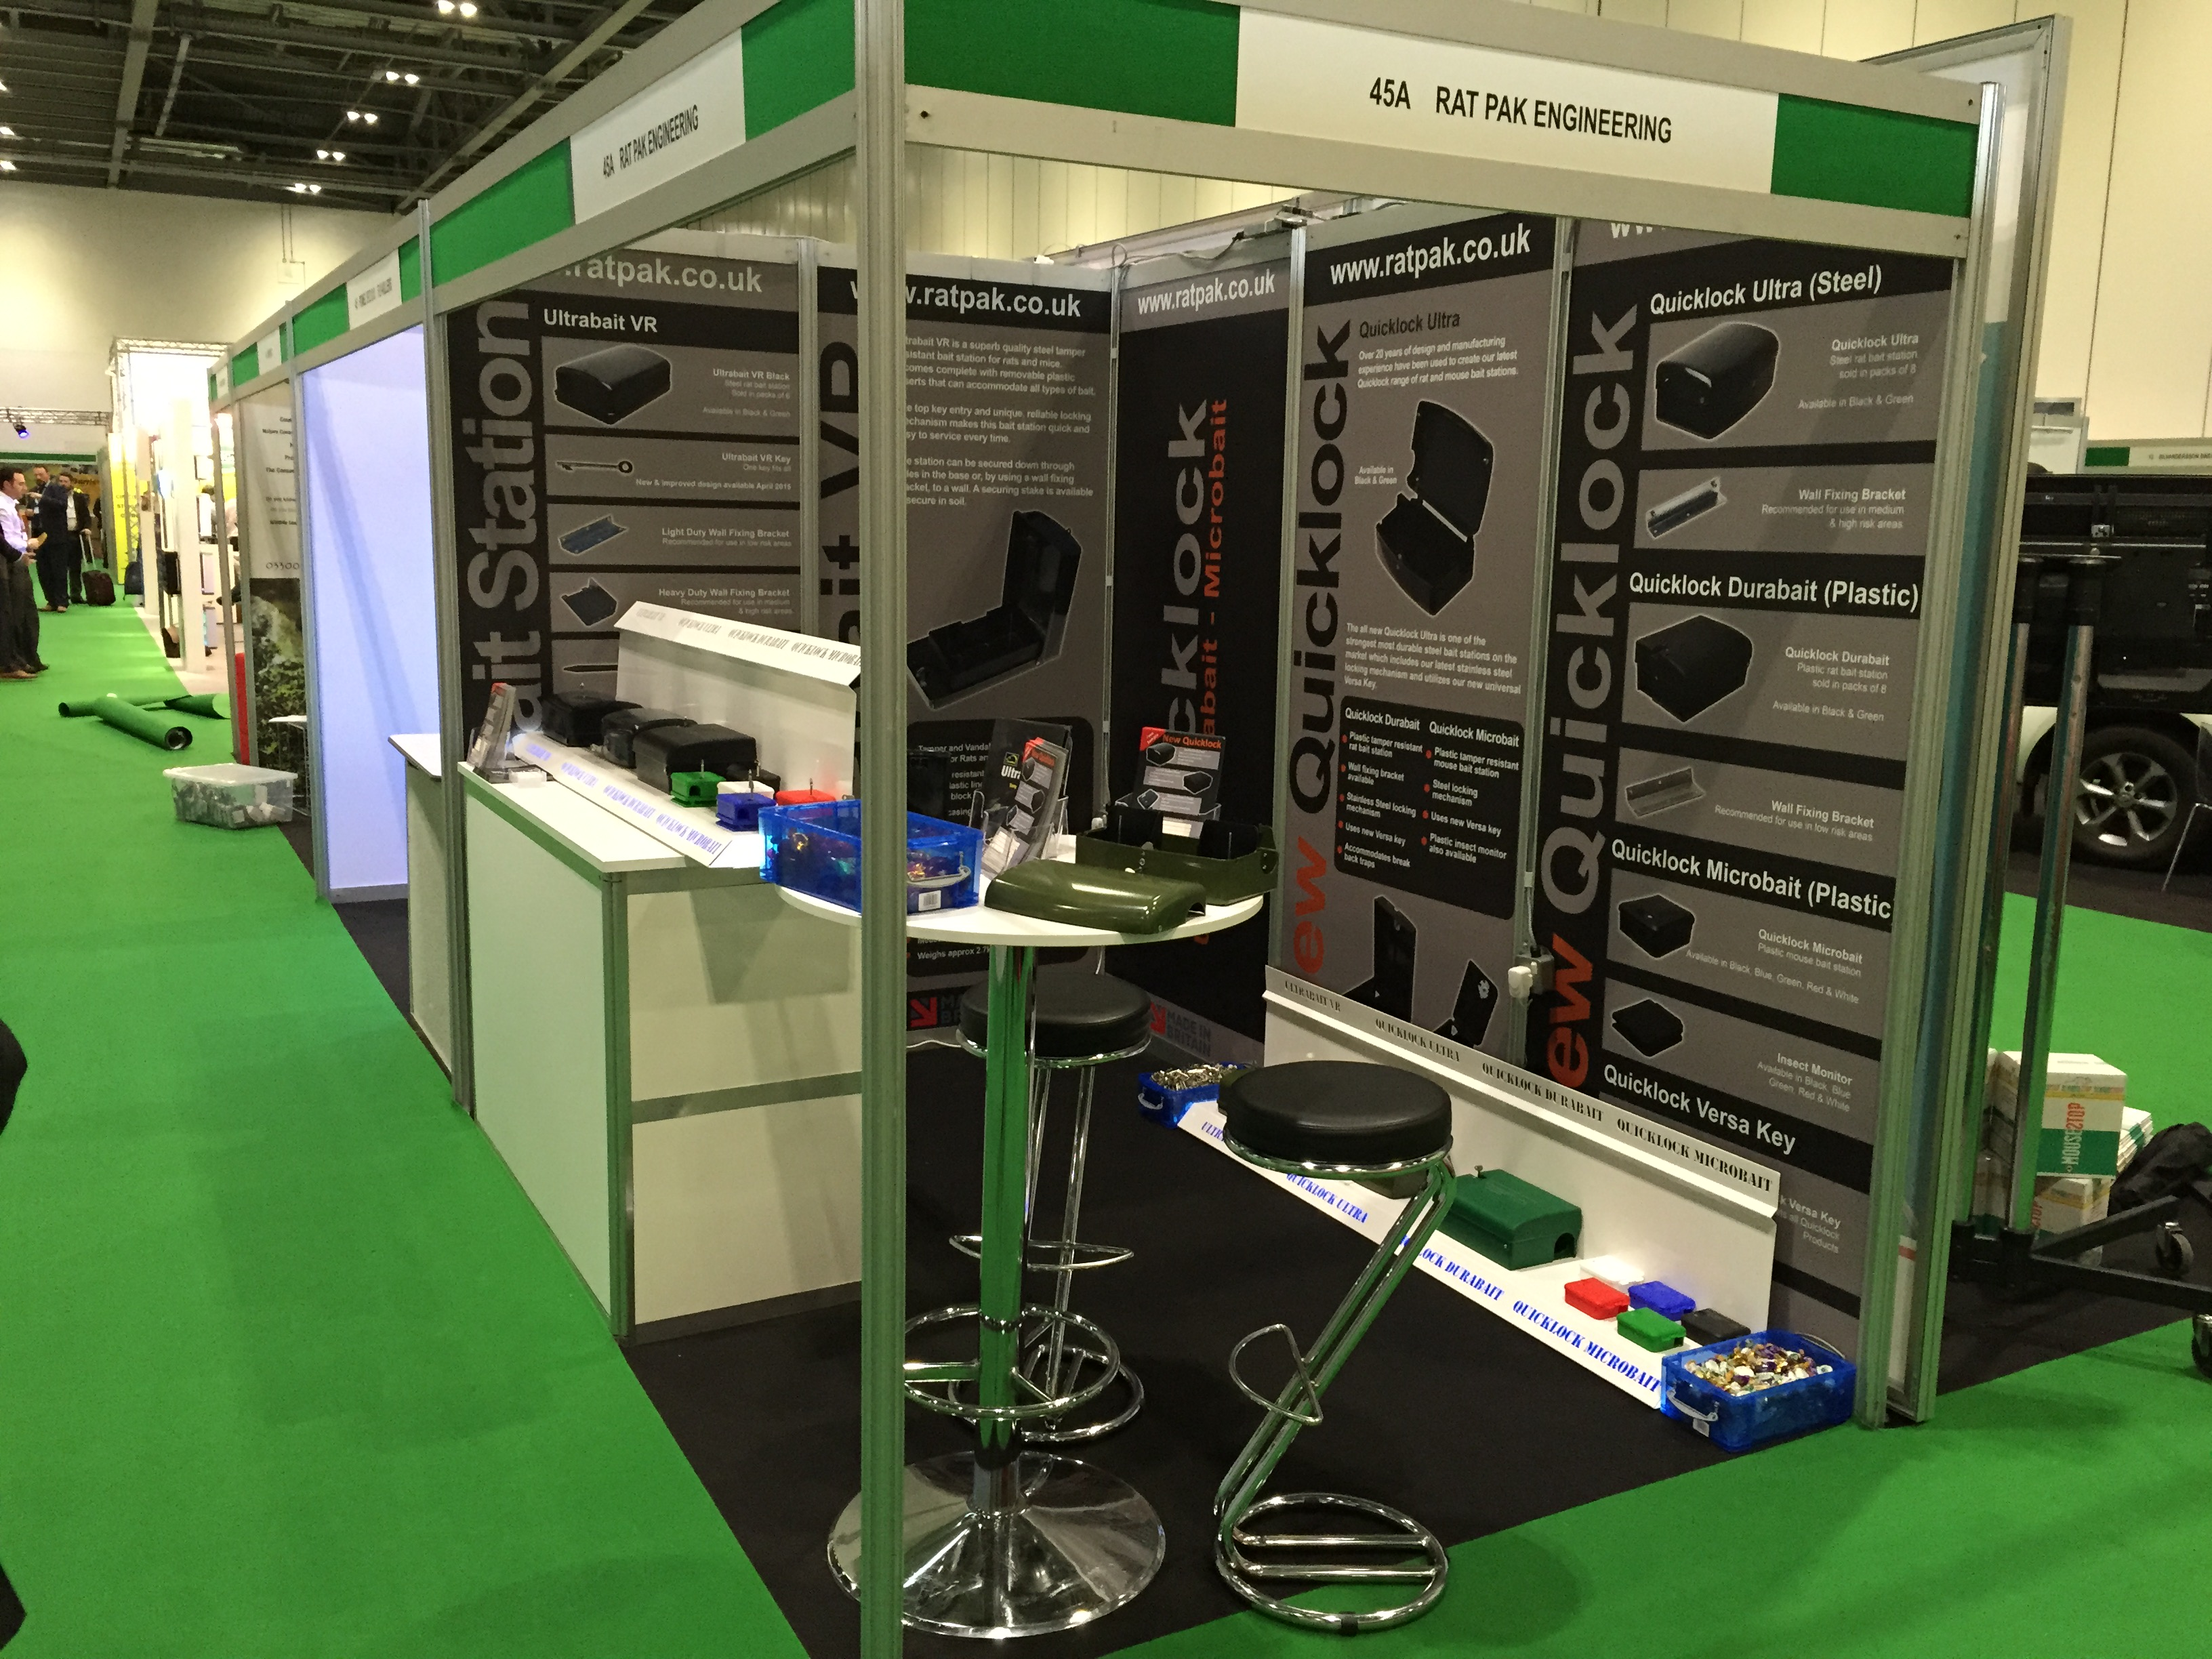 Excel London 25-26 March 2015